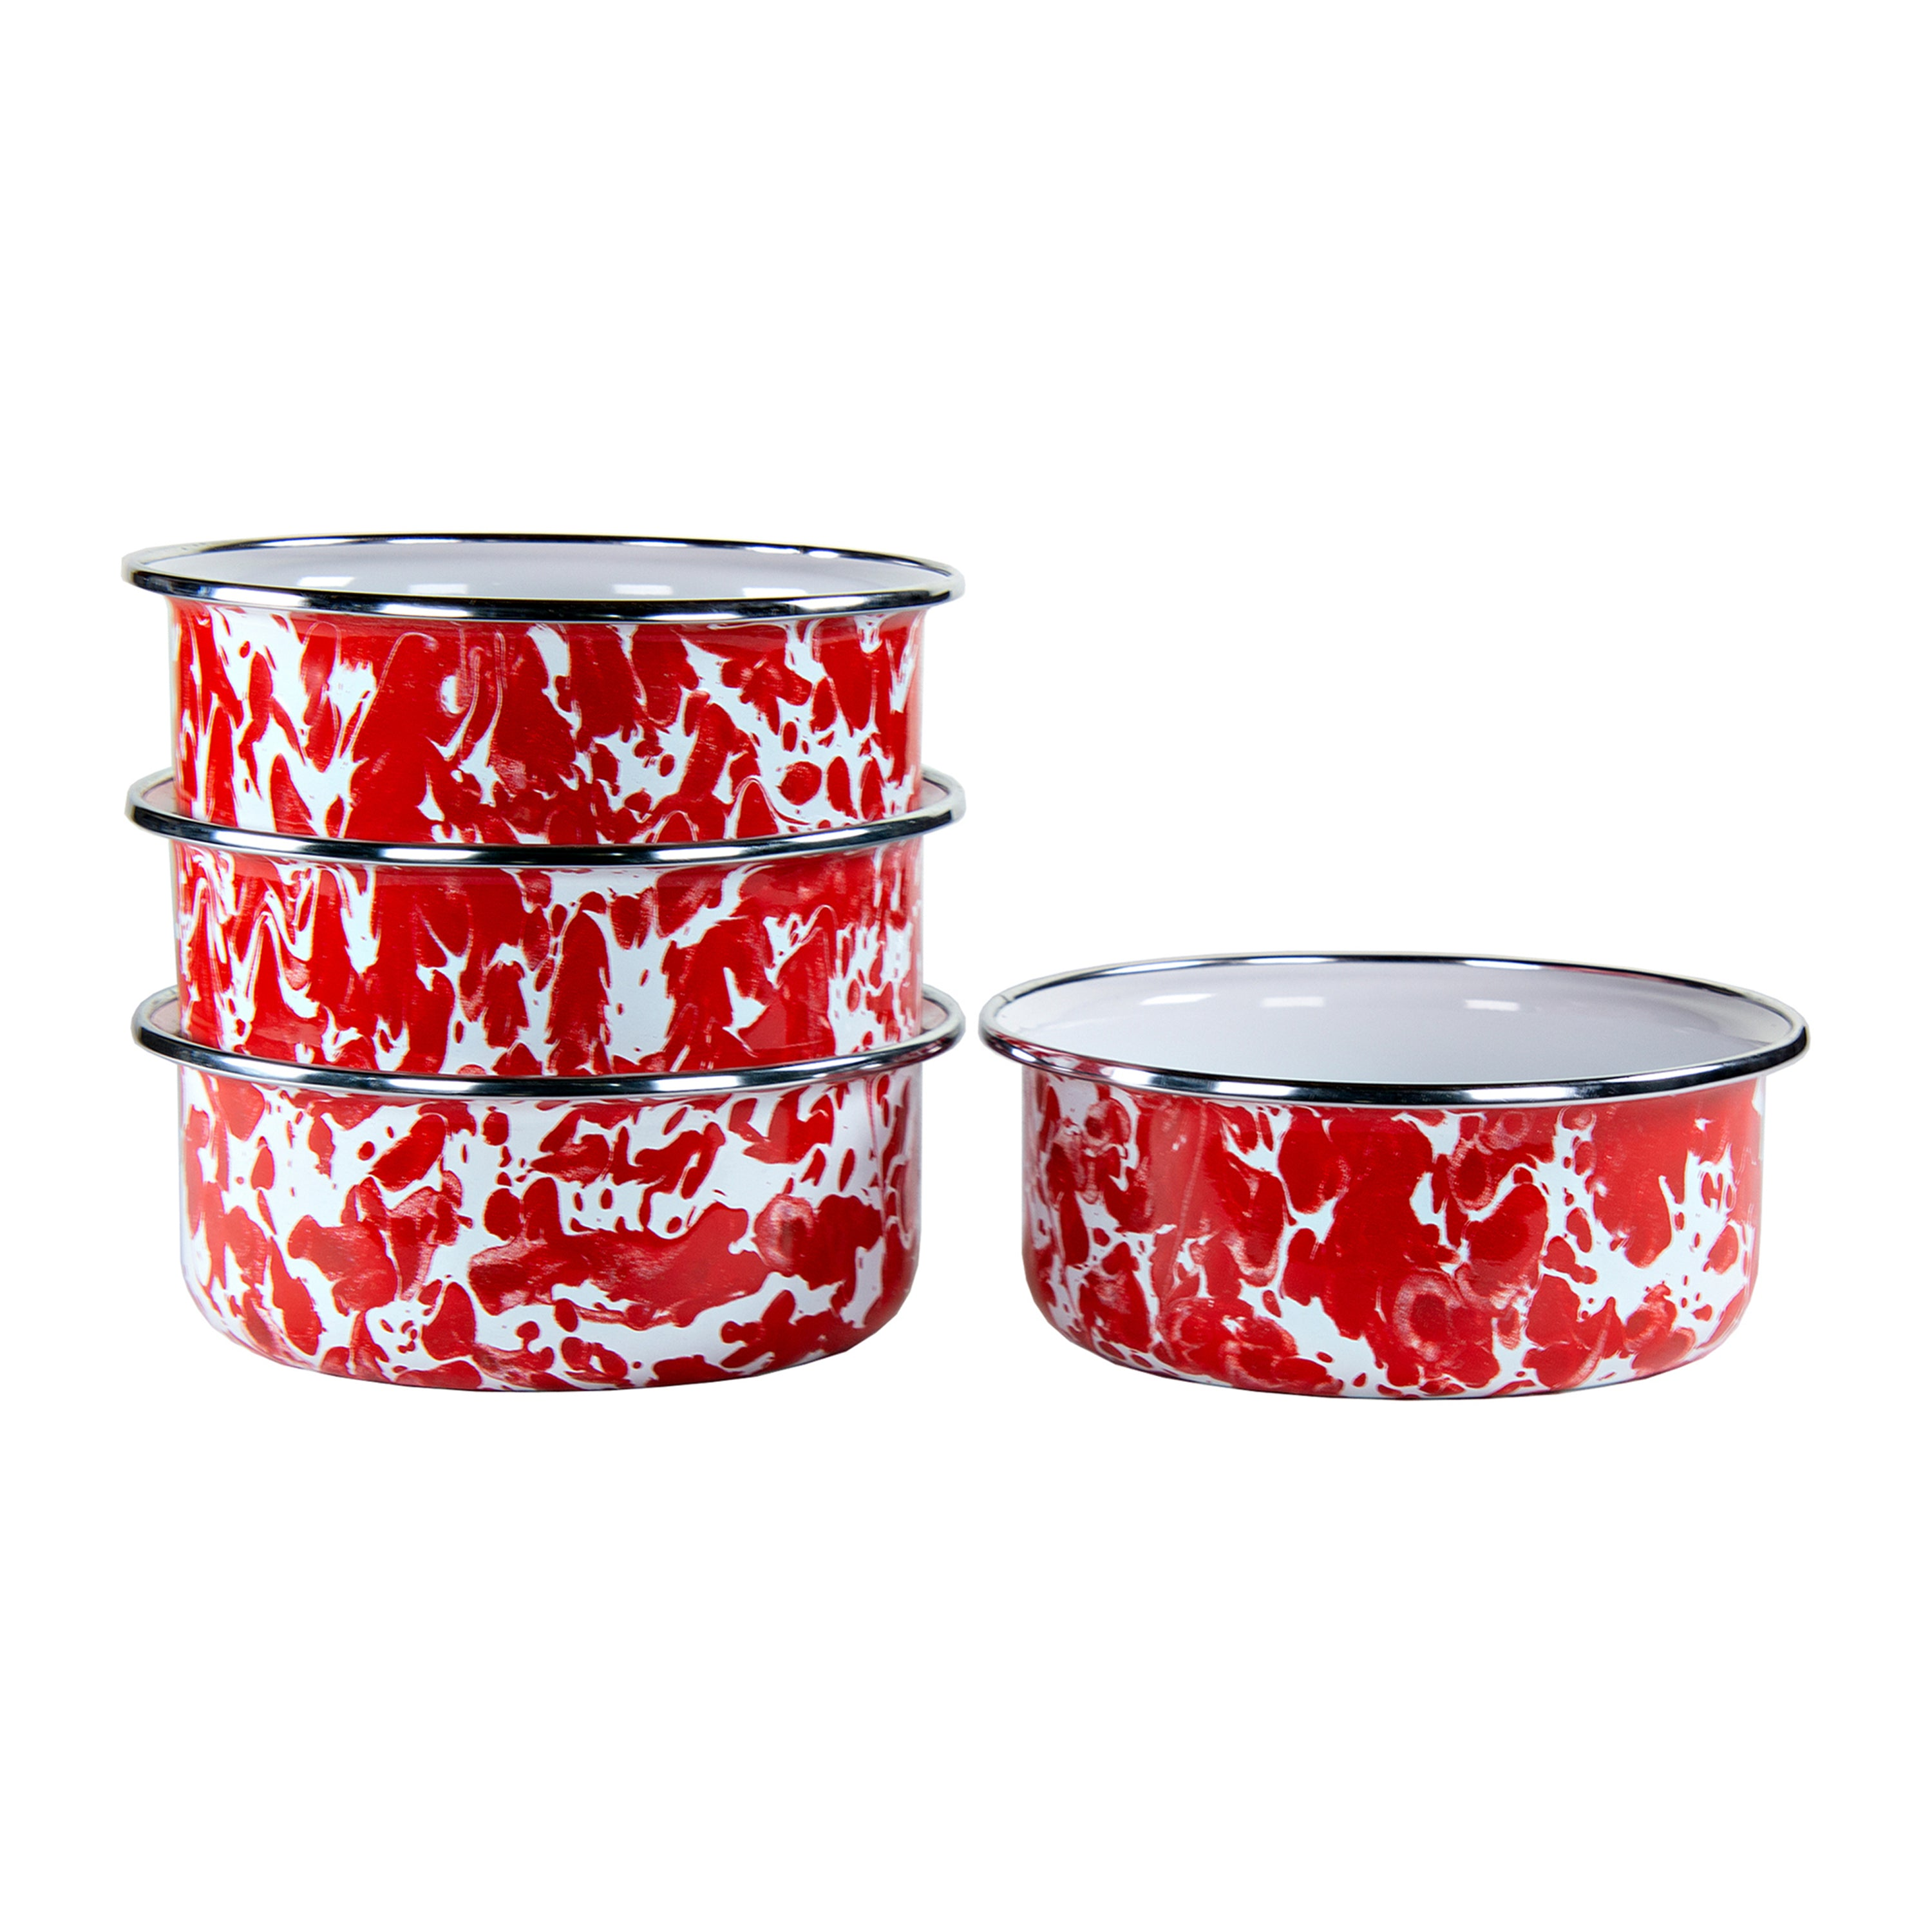 RD60S4 - Set of 4 Red Swirl Soup Bowls Image 1